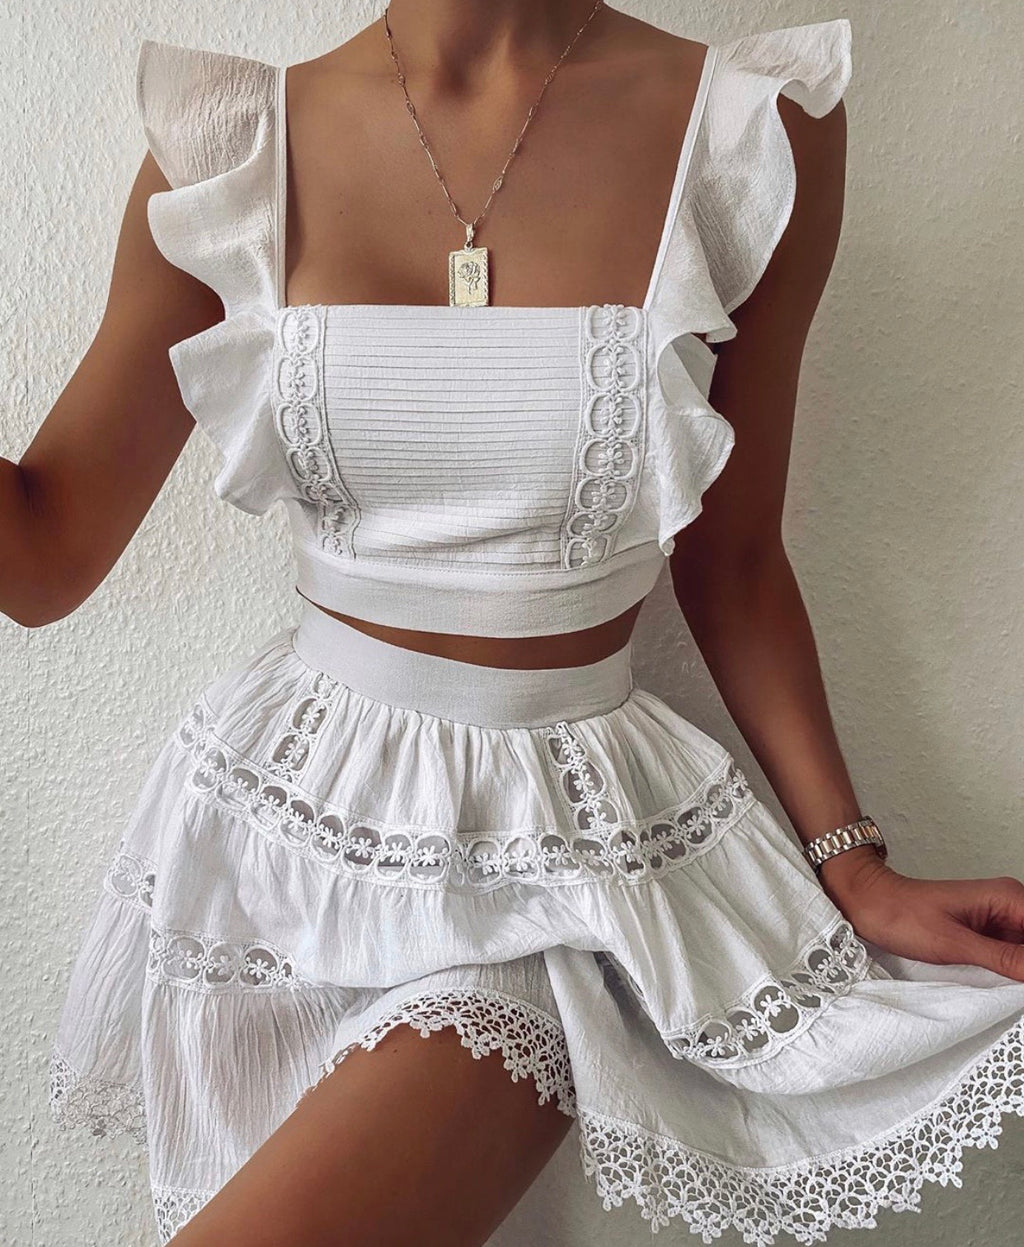 Isabelle white top and skirt (sold as seperates)